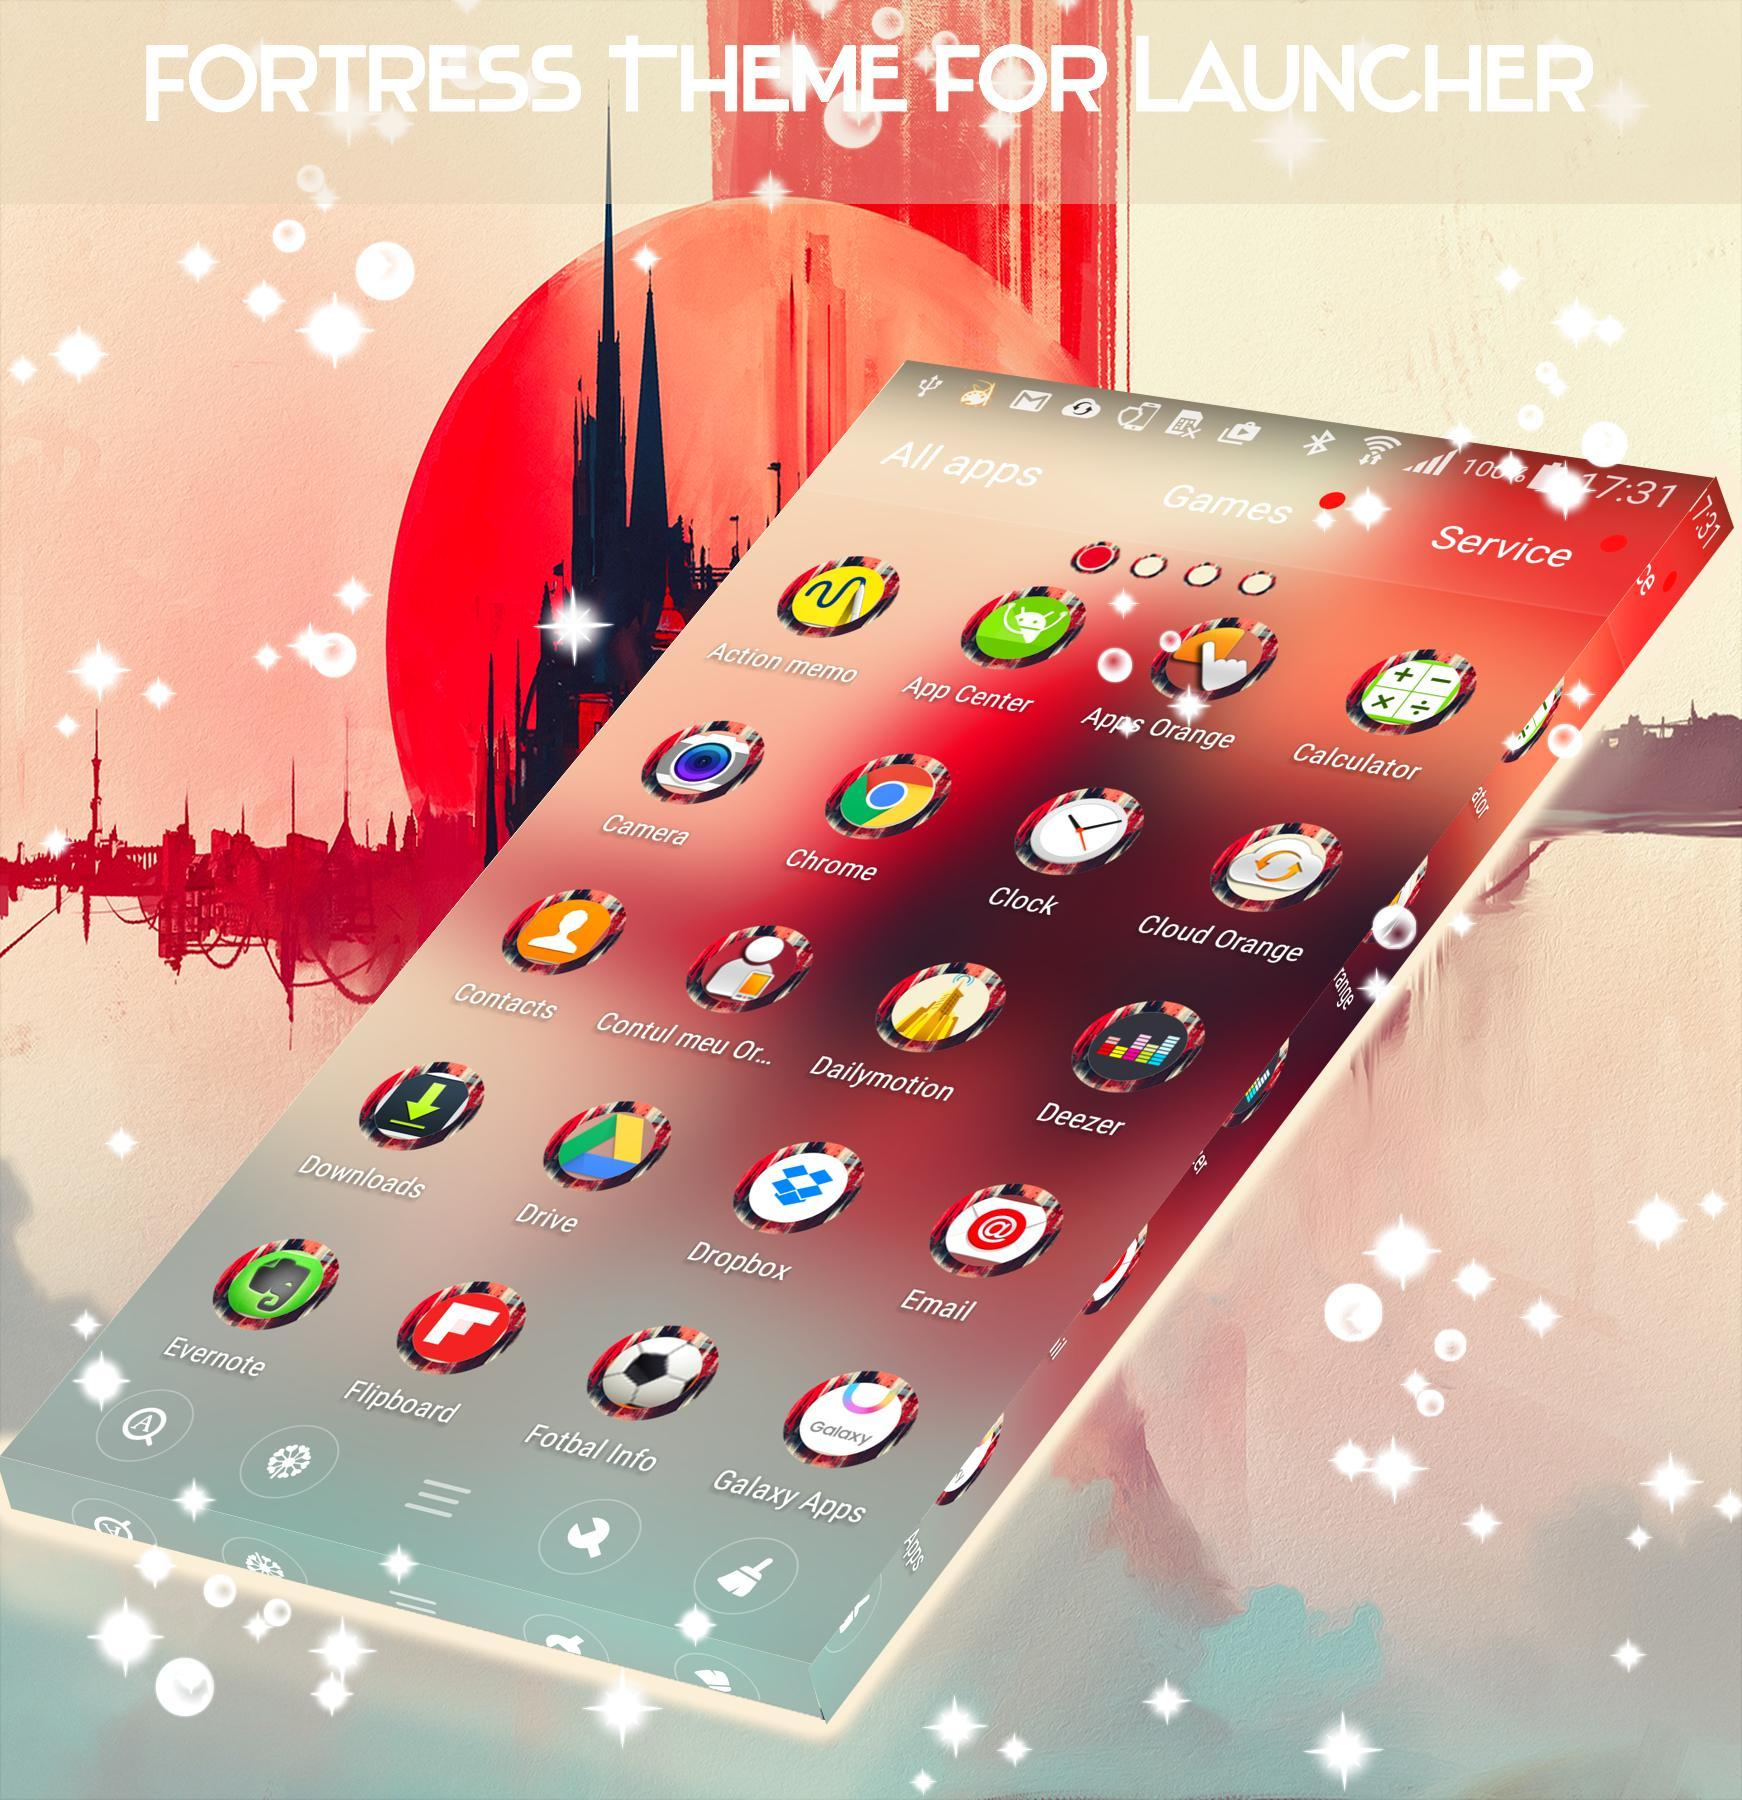 Fortress Theme for Launcher screenshot 4